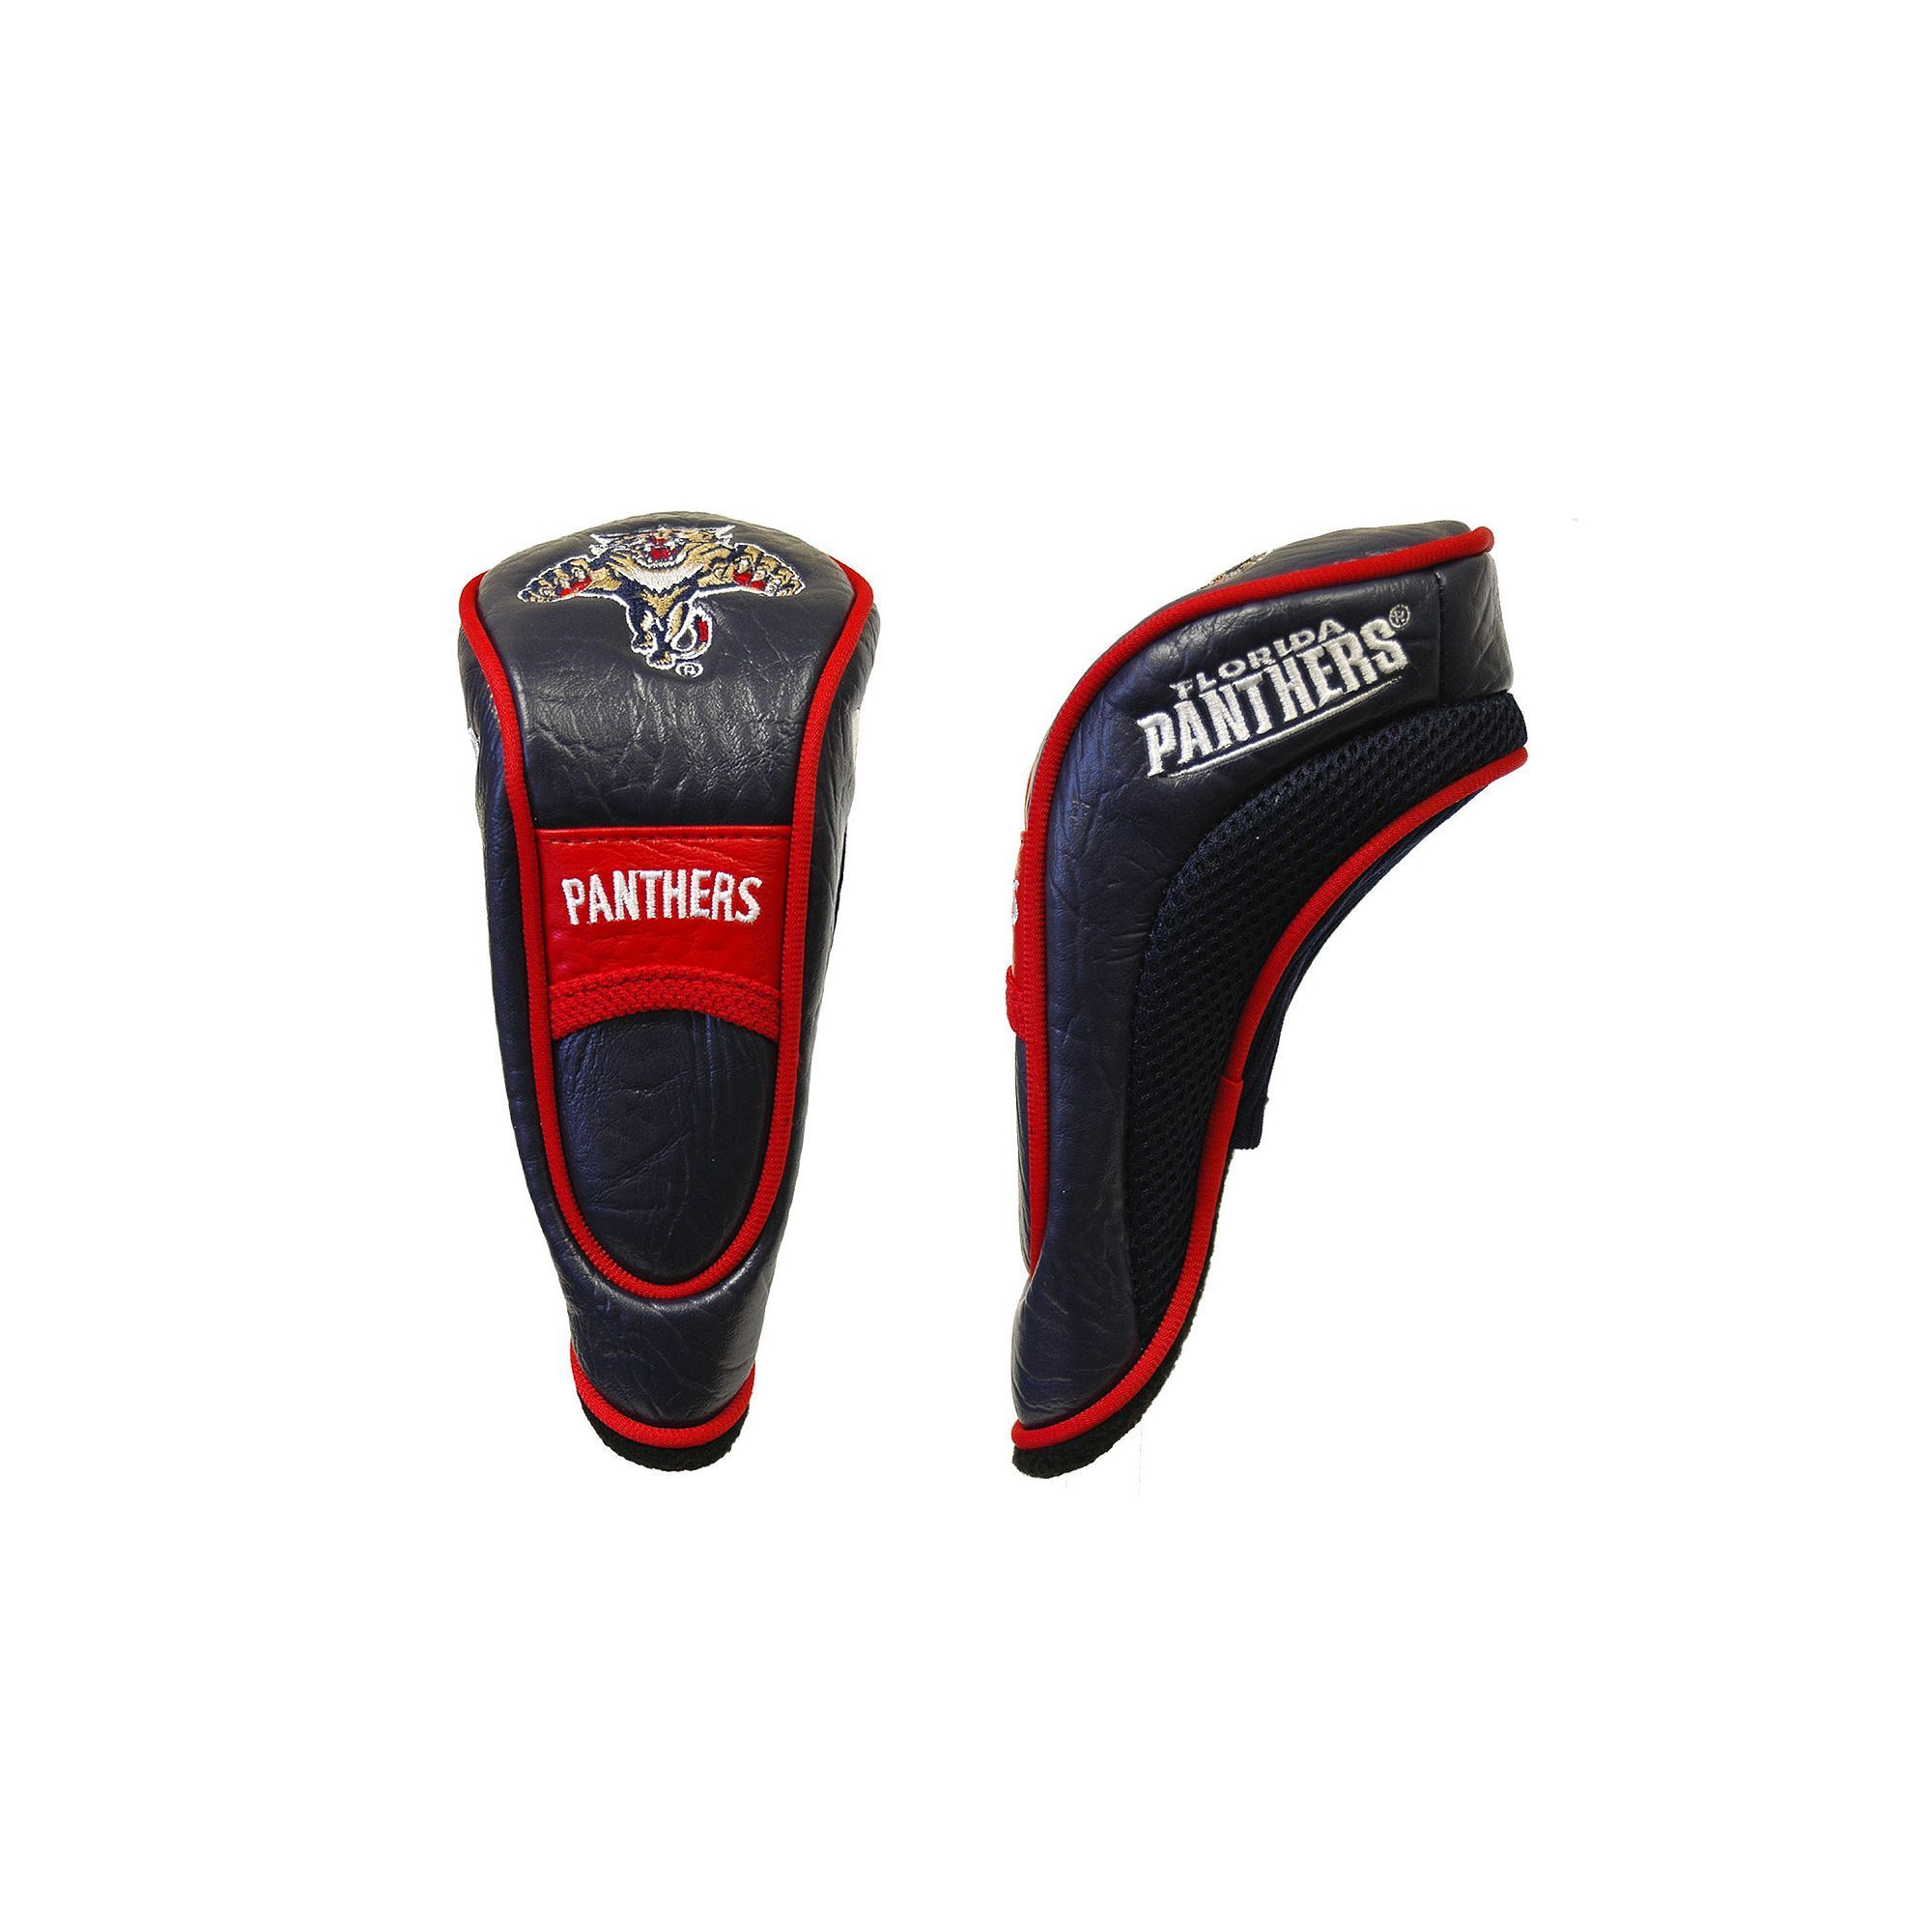 Florida Panthers Hybrid Head Cover Florida panthers